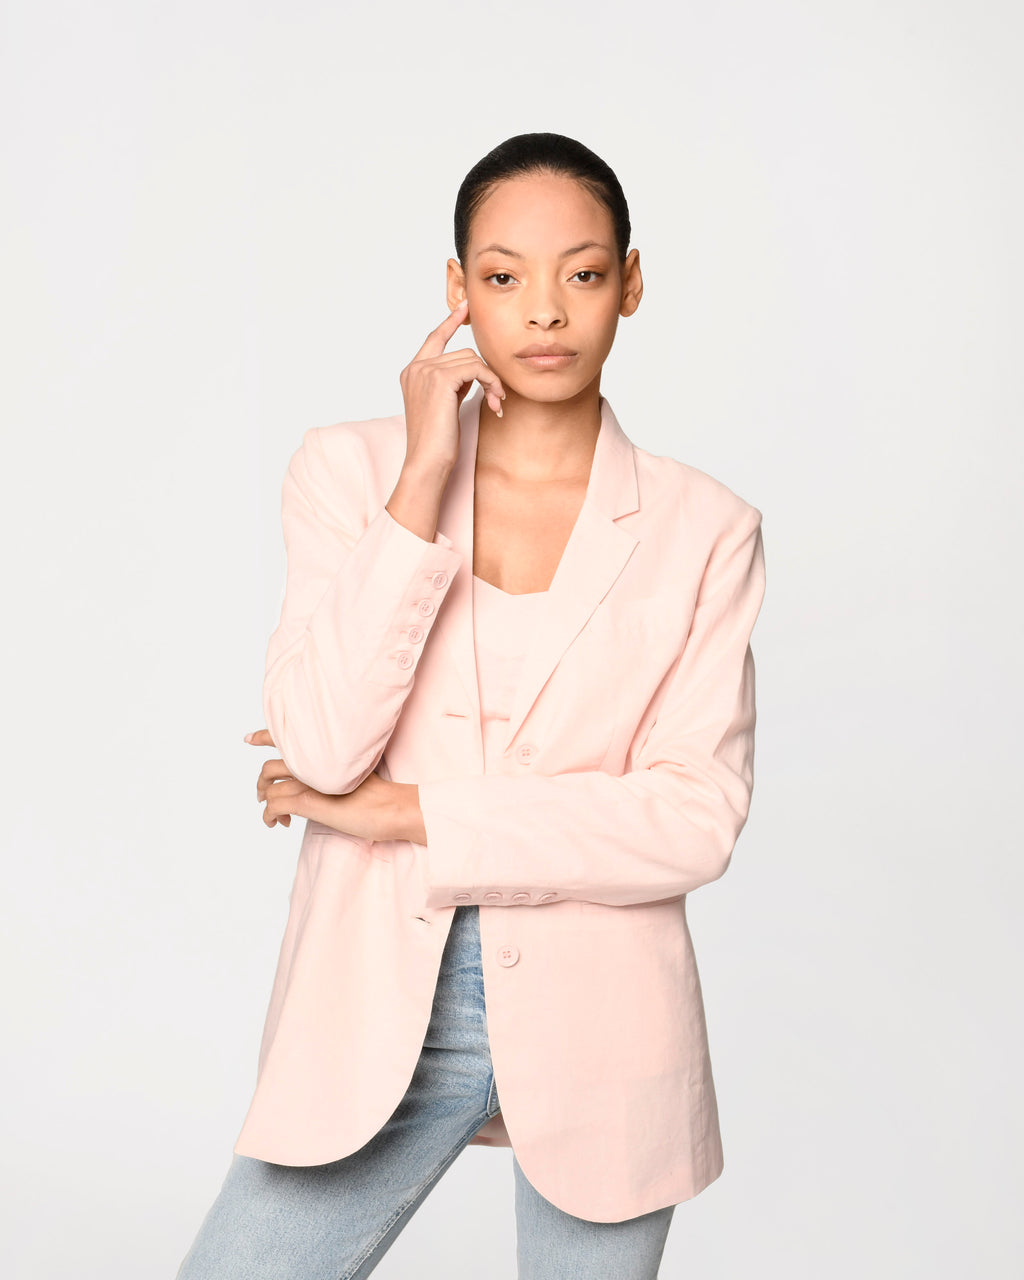 CJ18736 - LINEN OVERSIZED BLAZER - outerwear - blazers - Our linen oversized blazer is the perfect transitional piece from spring to summer. This lightweight piece is designed in a classic blazer silhouette but is updated to be slightly oversized. Add 1 line break Stylist Tip: Pair with our linen crop top for a matching set.